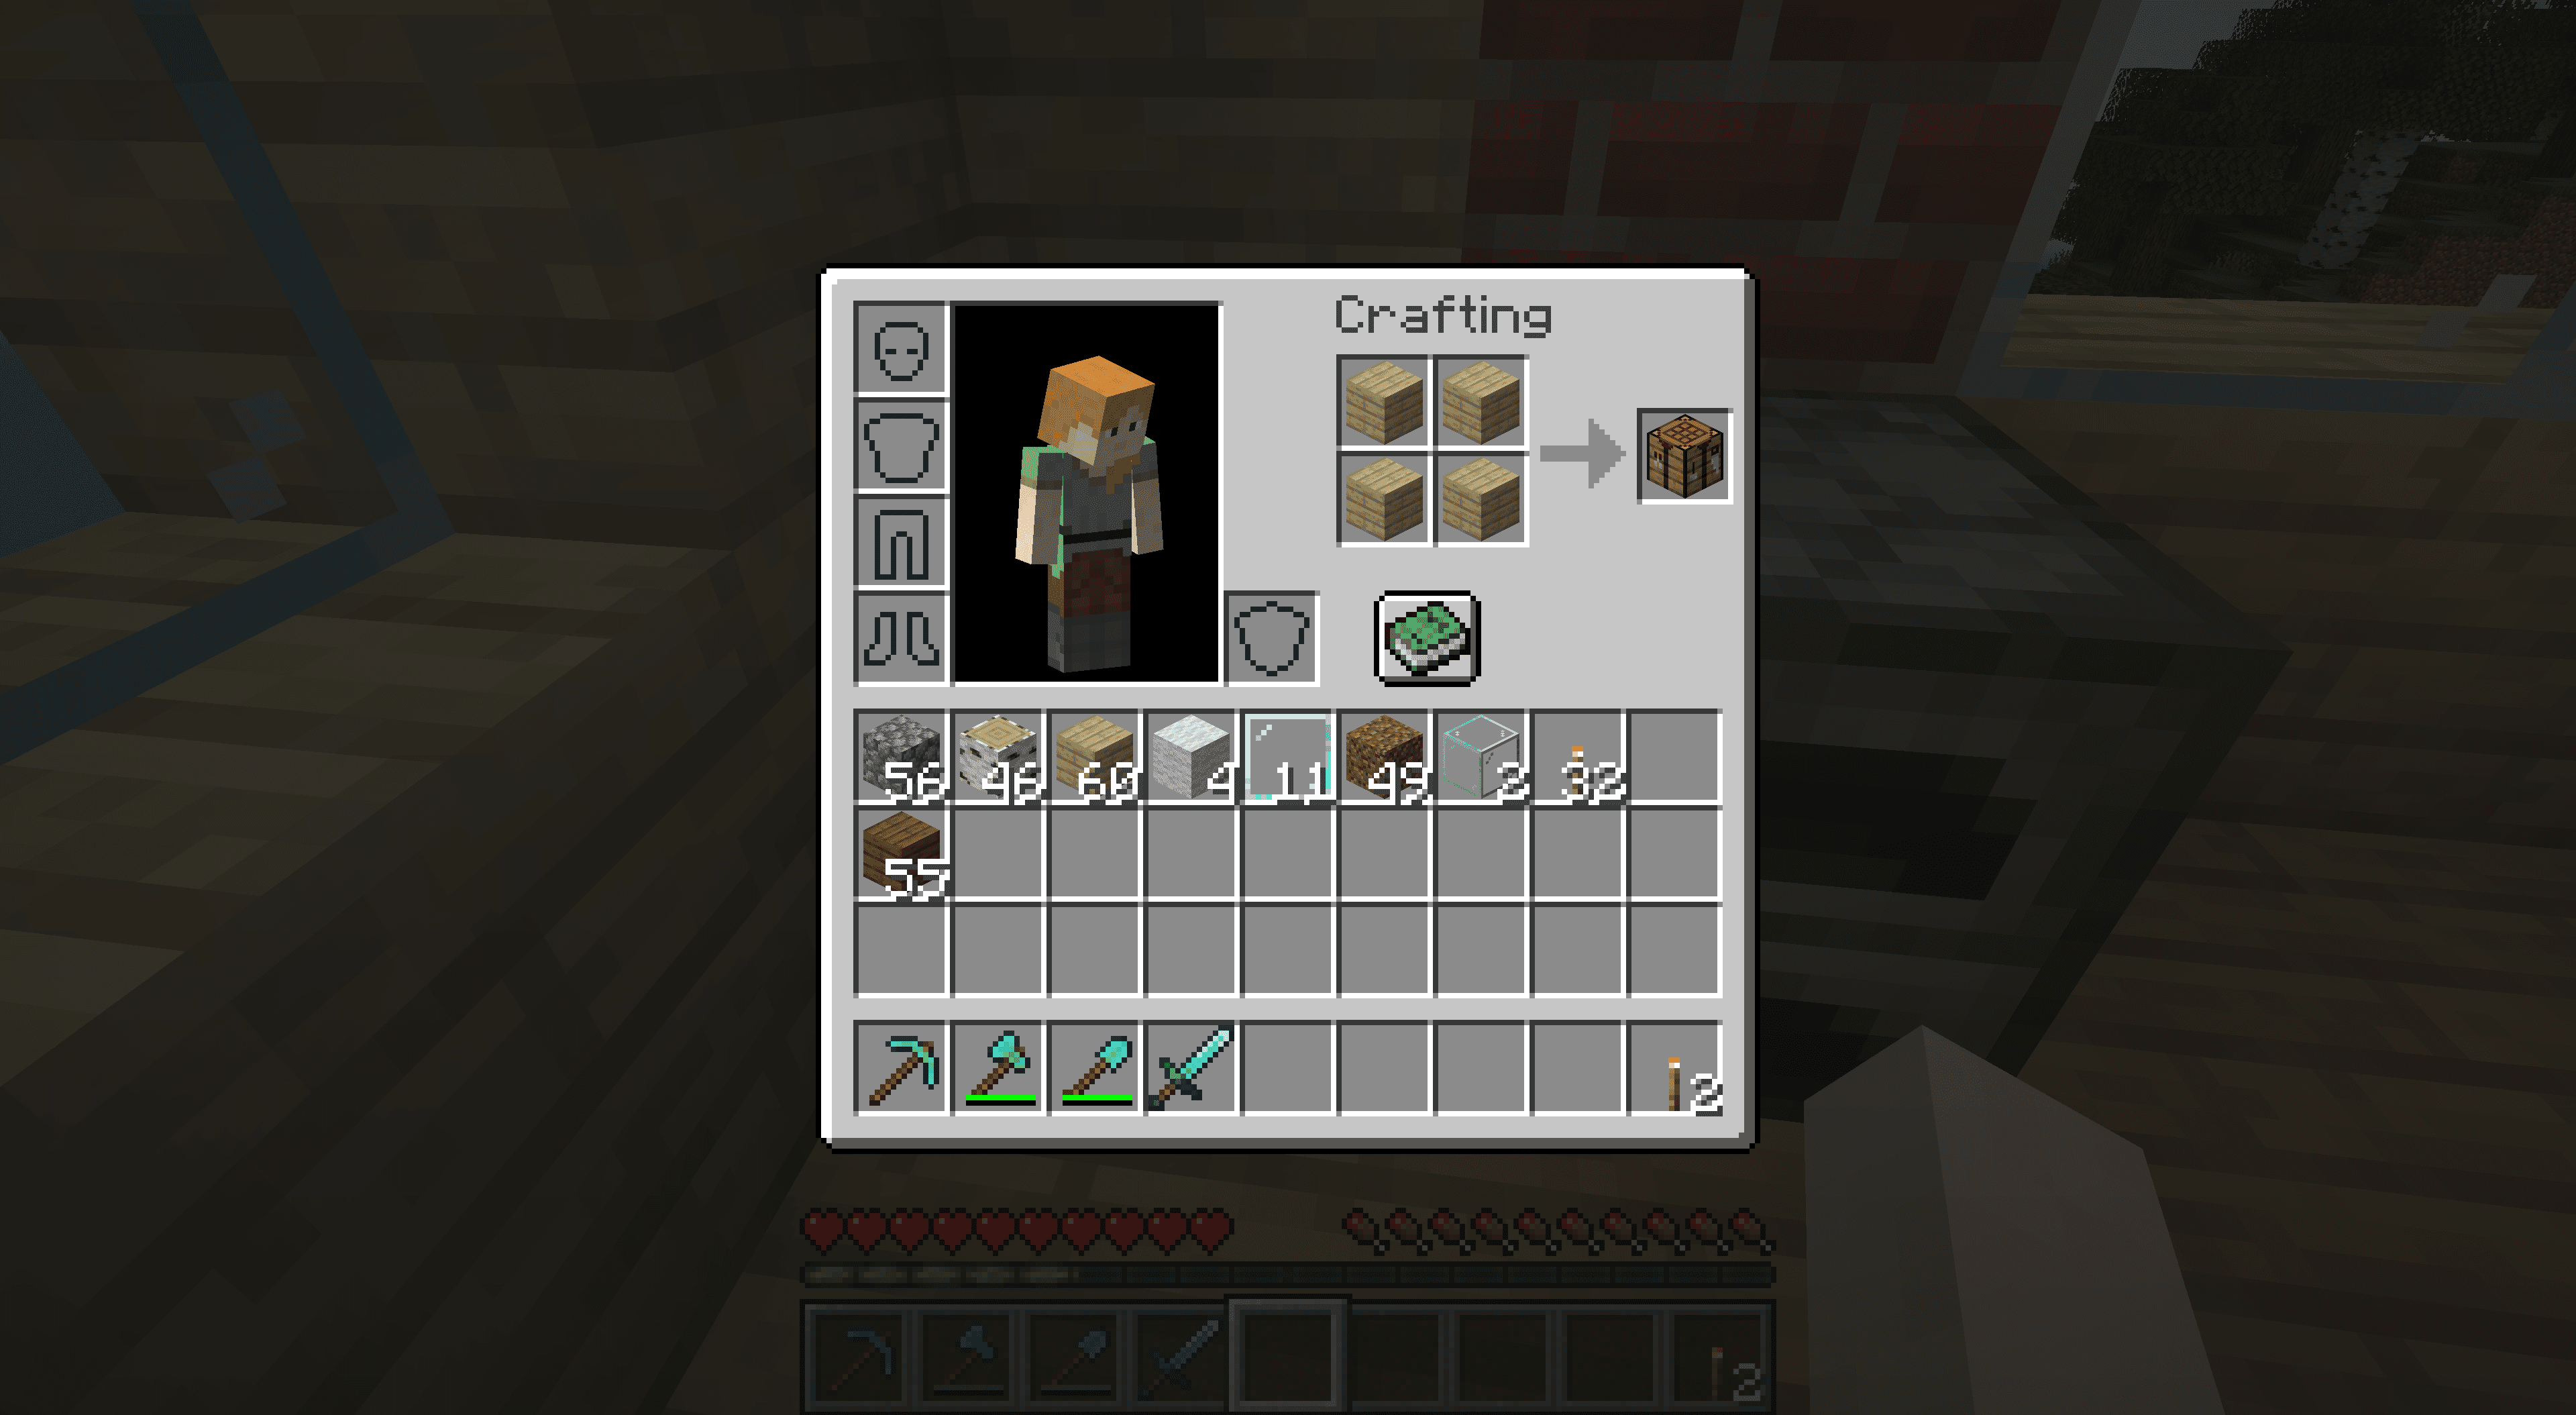 Crafting a crafting table in Minecraft.